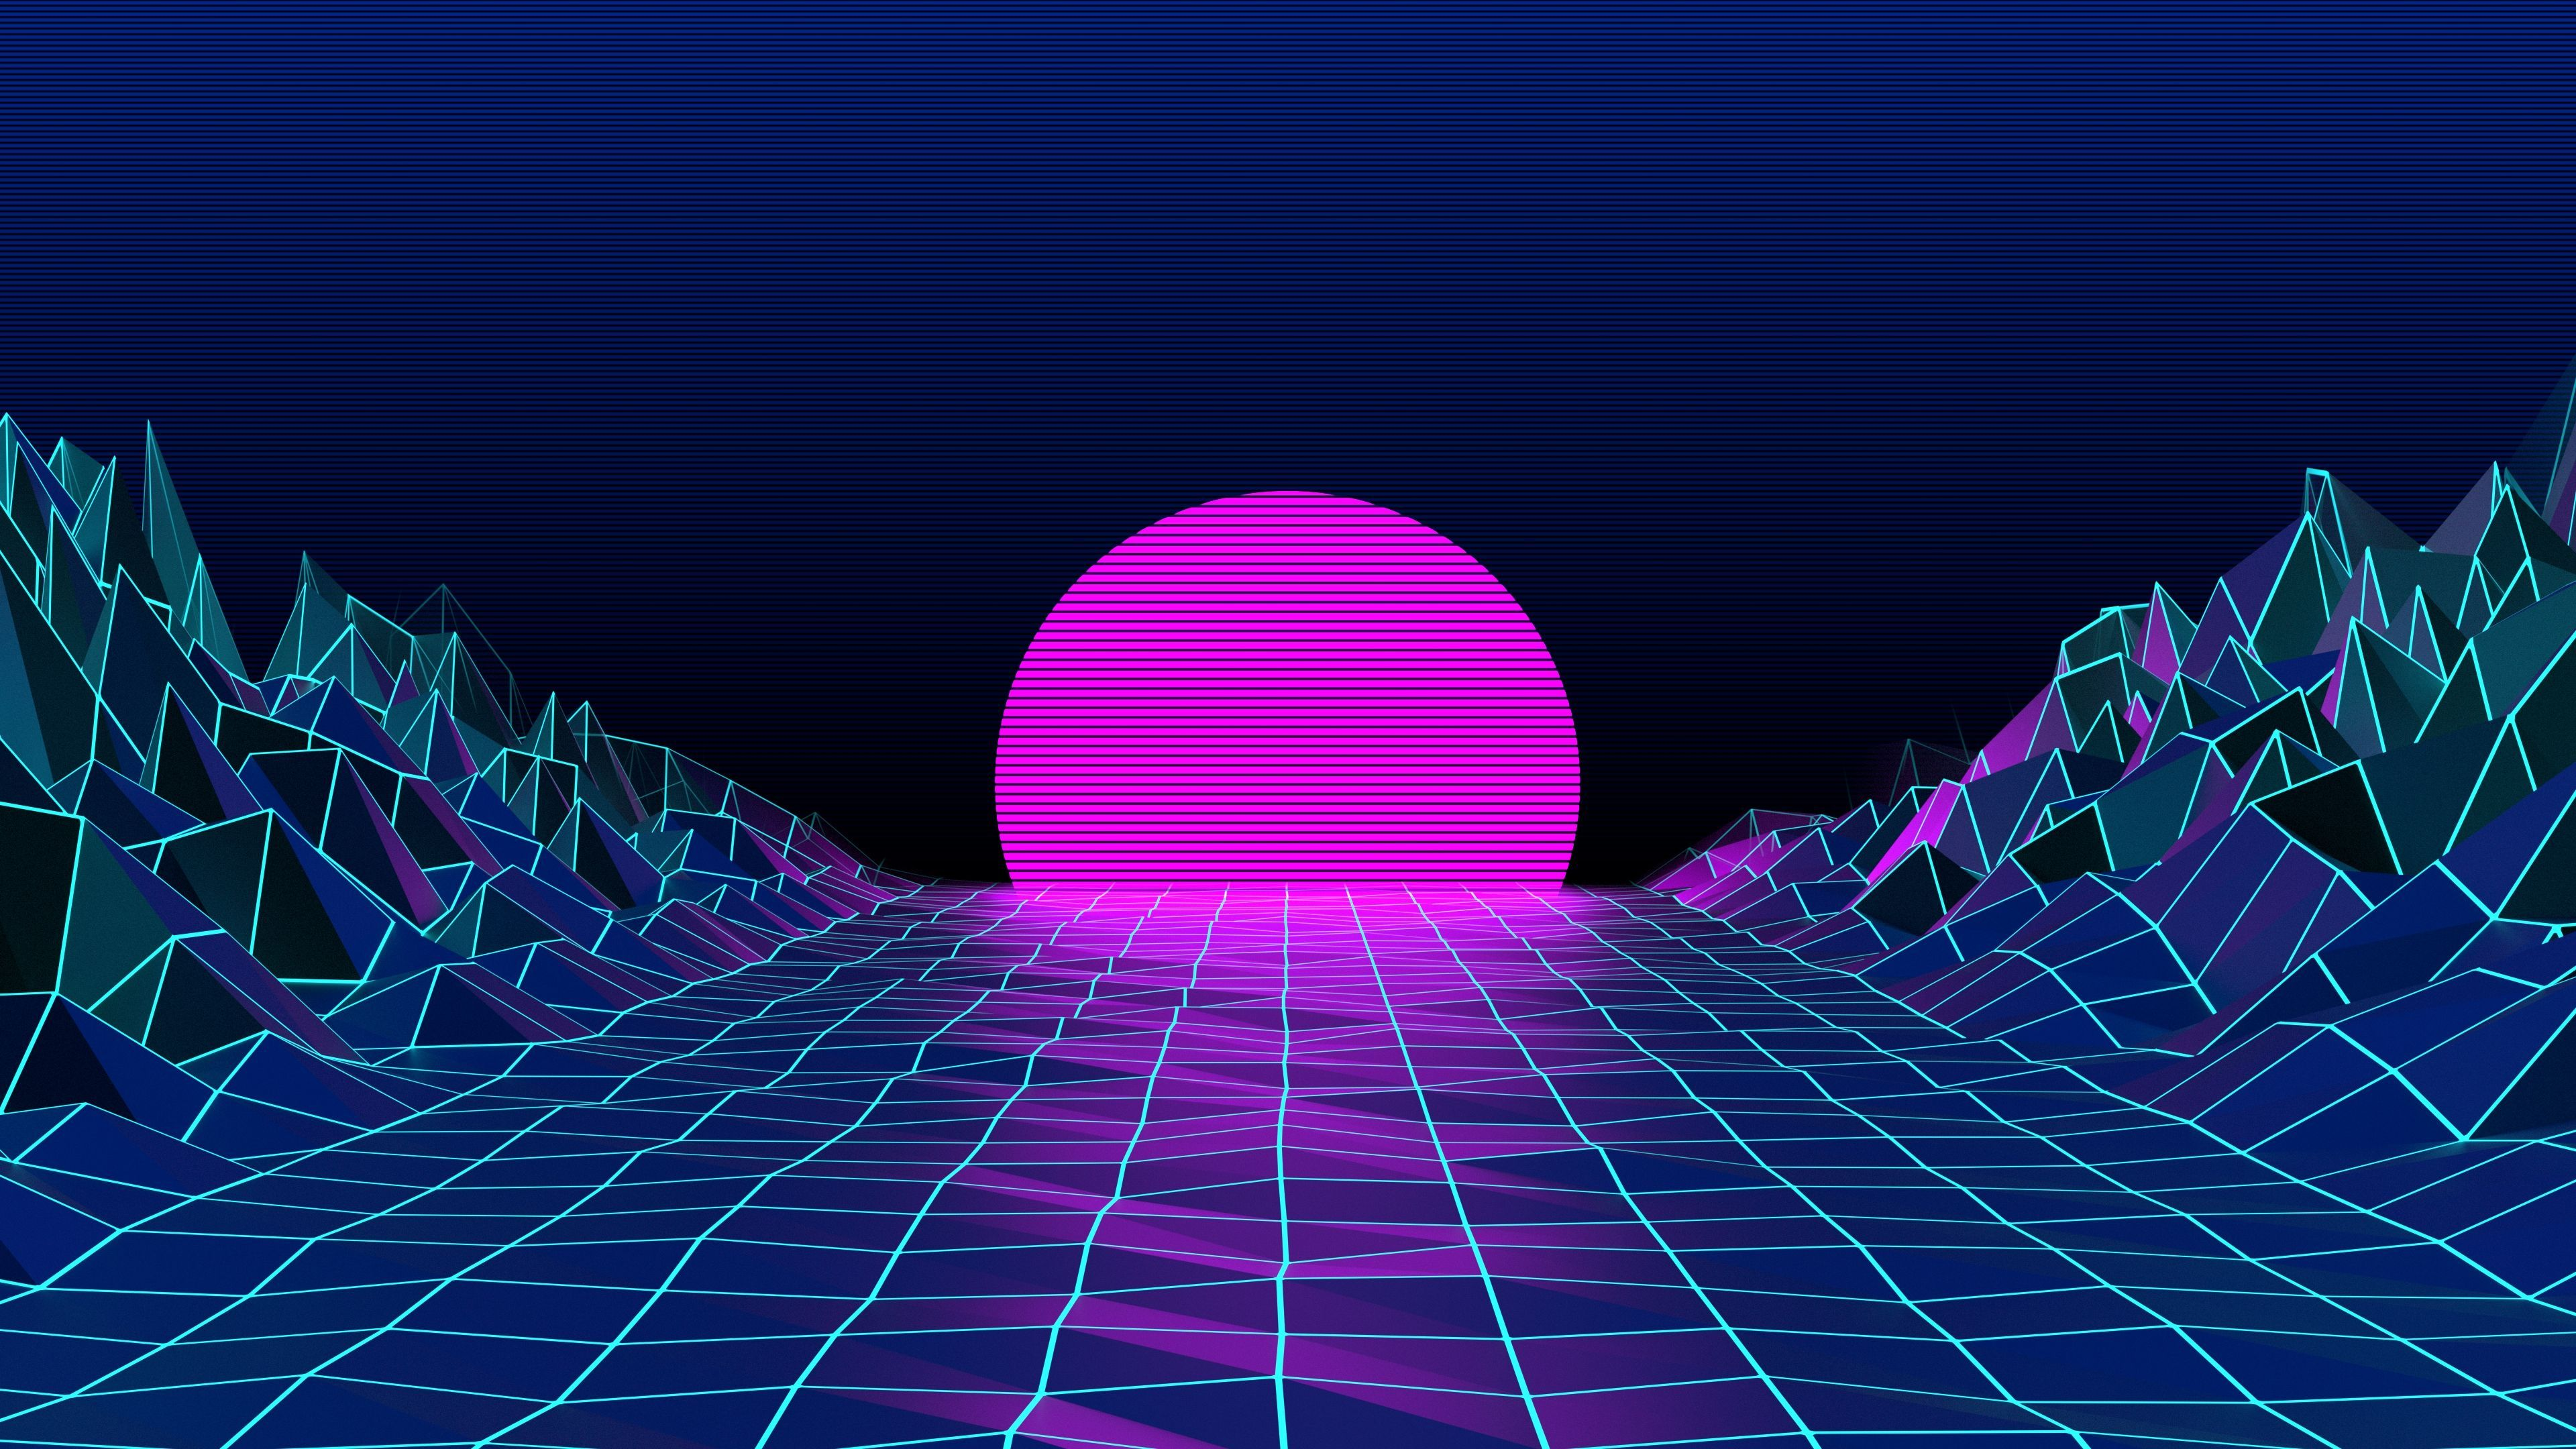 Cool 80s Wallpapers   Top Cool 80s Backgrounds   WallpaperAccess 3840x2160